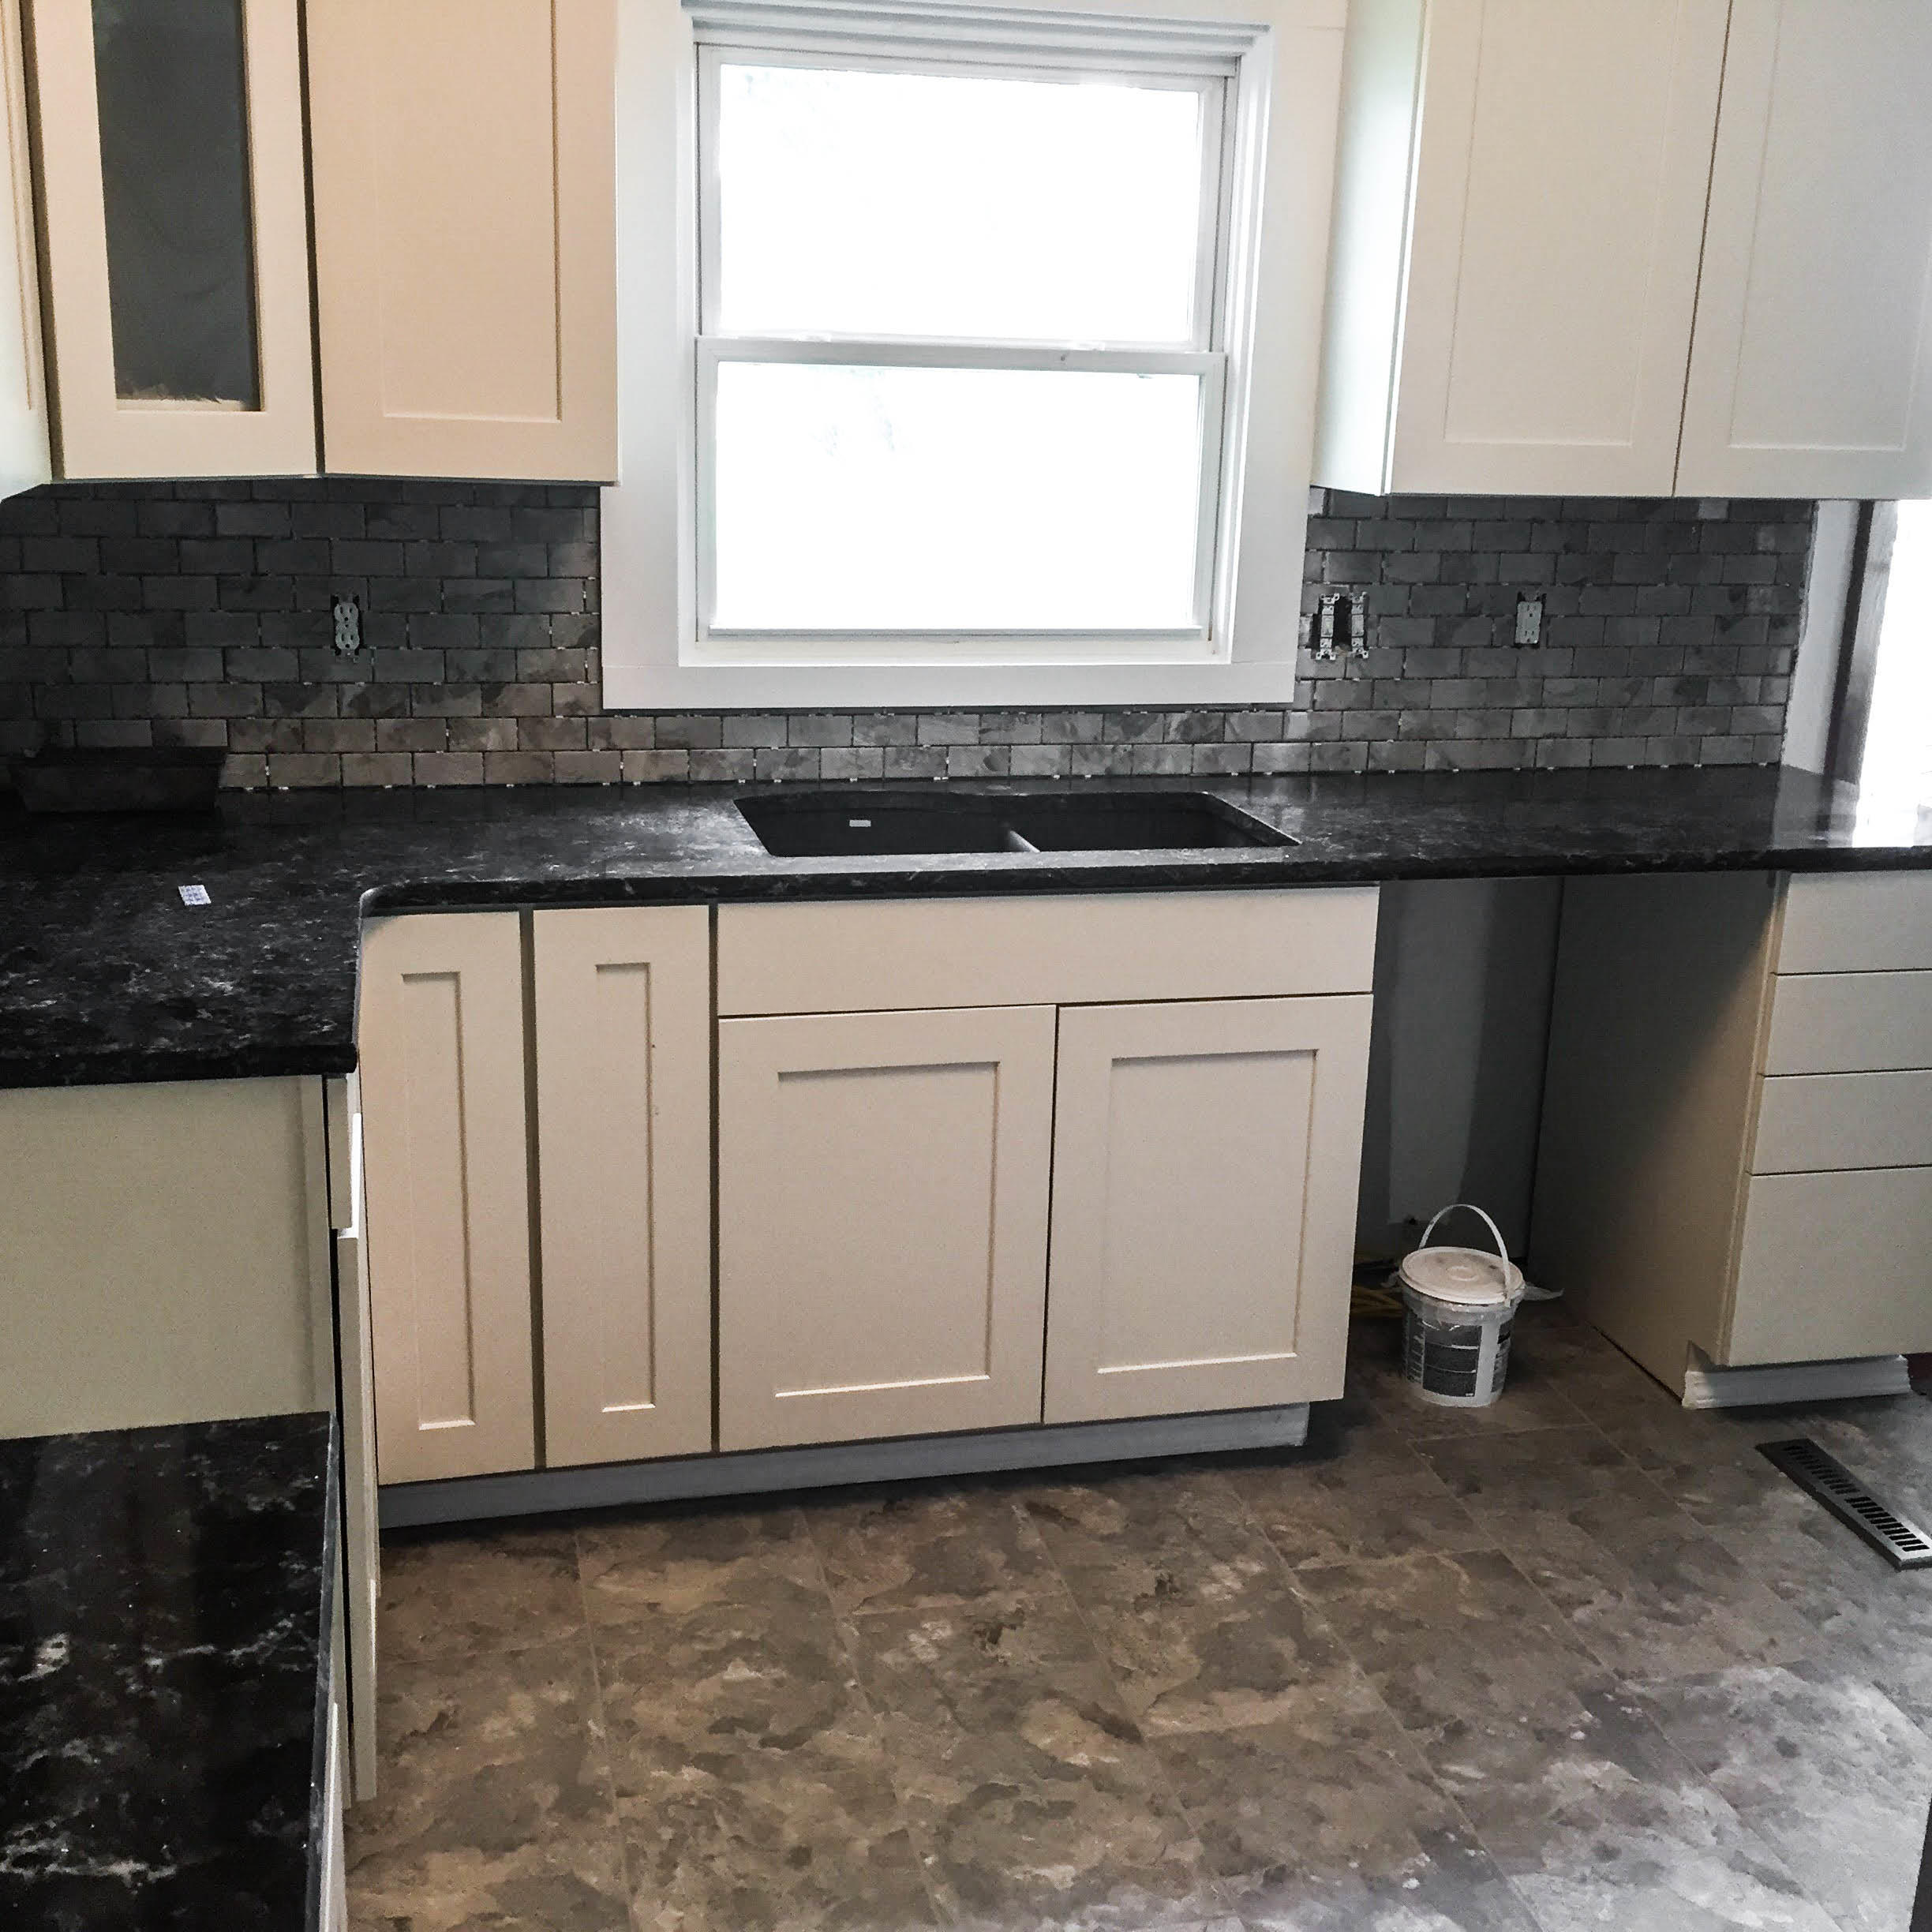 Kitchen Remodeling Cabinets Countertops In Wichita Kansas - Kitchen remodel wichita ks